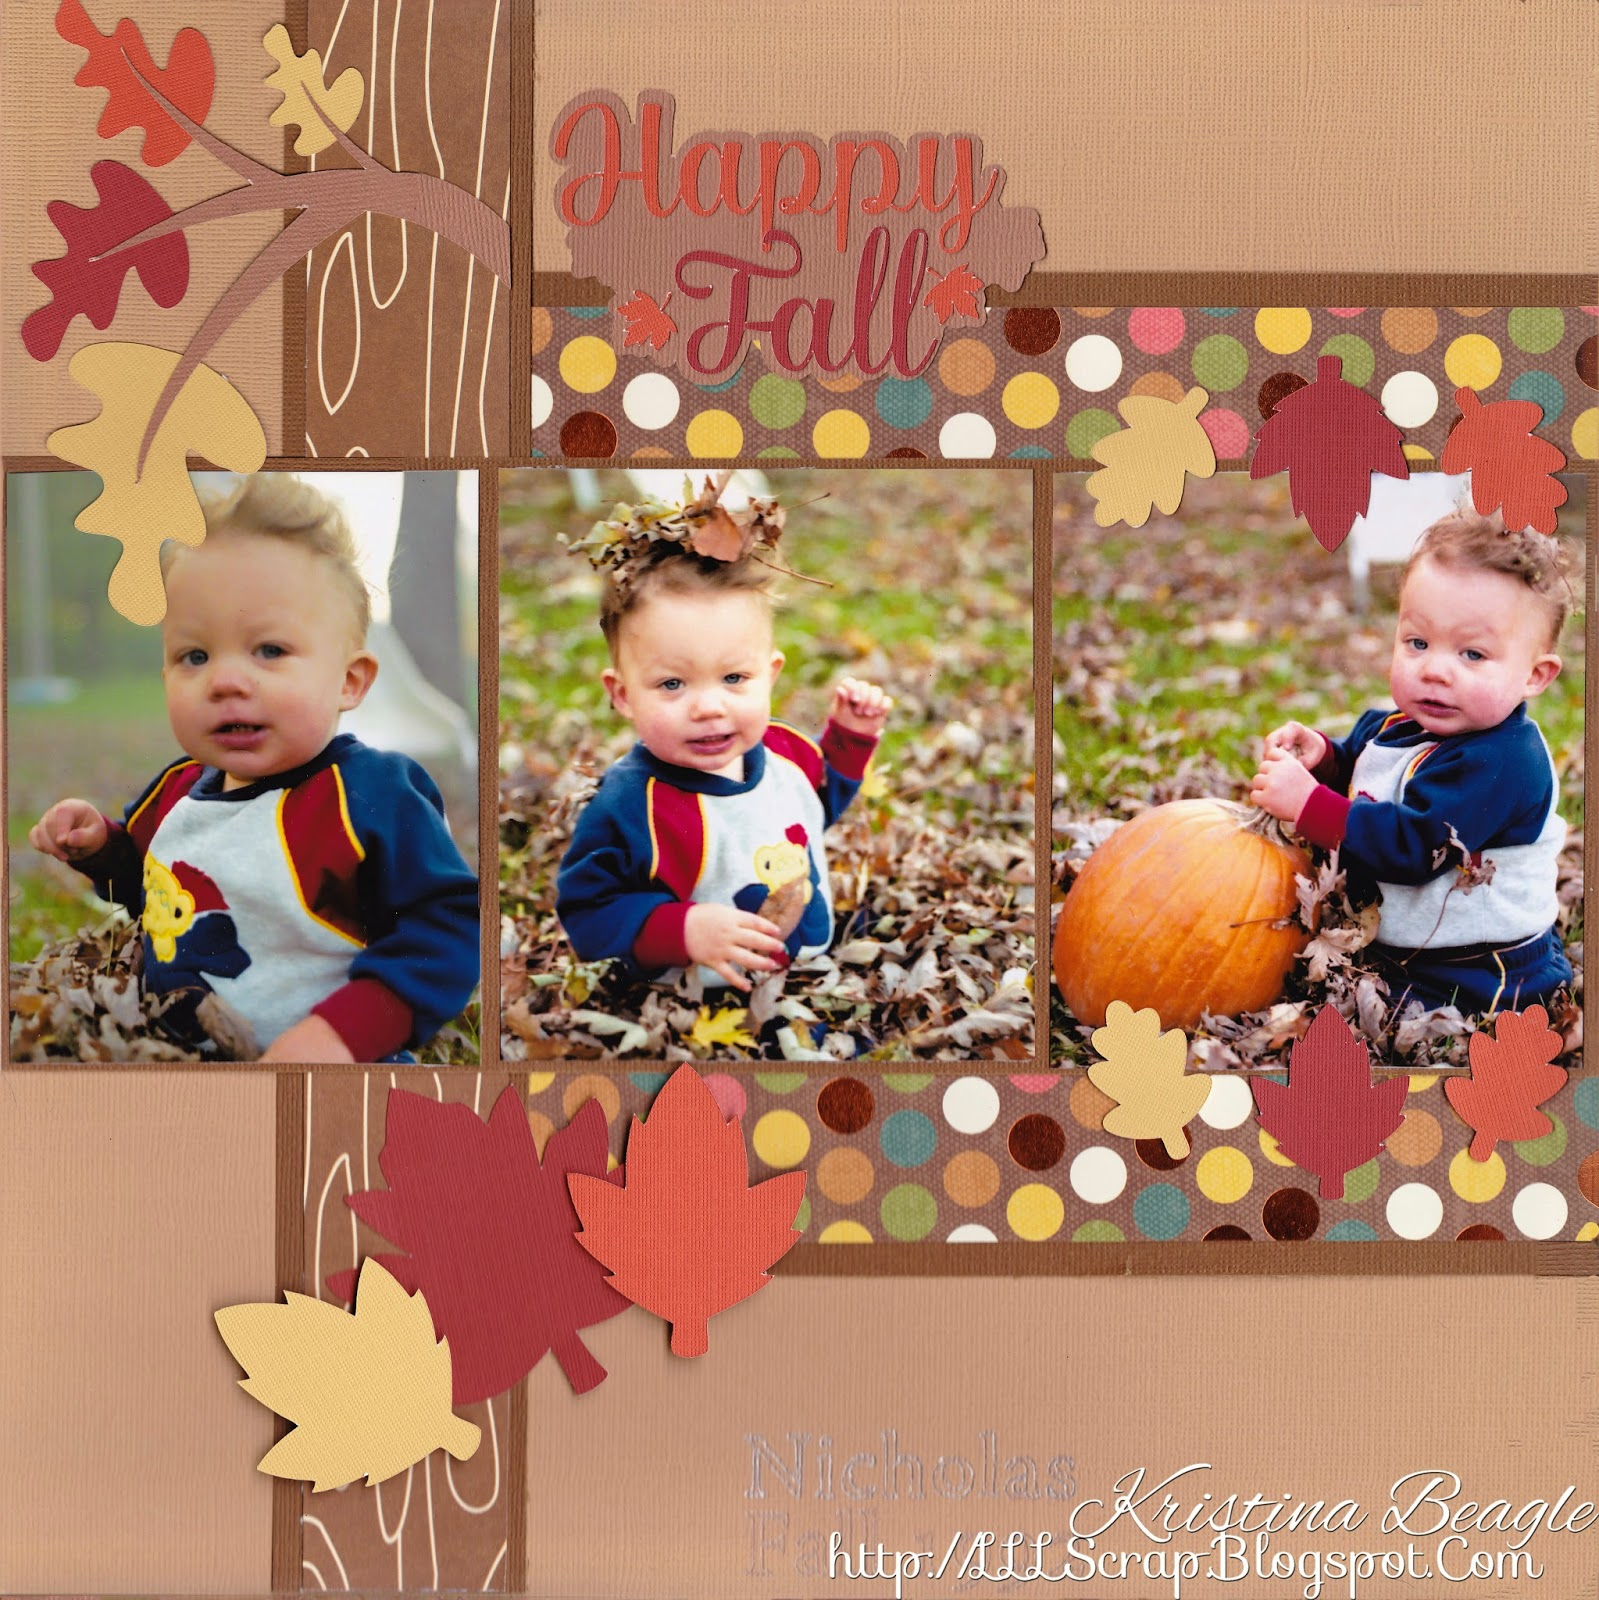 http://kellycraftblog.blogspot.com/2014/11/happy-fall-layout-by-kristina-beagle.html